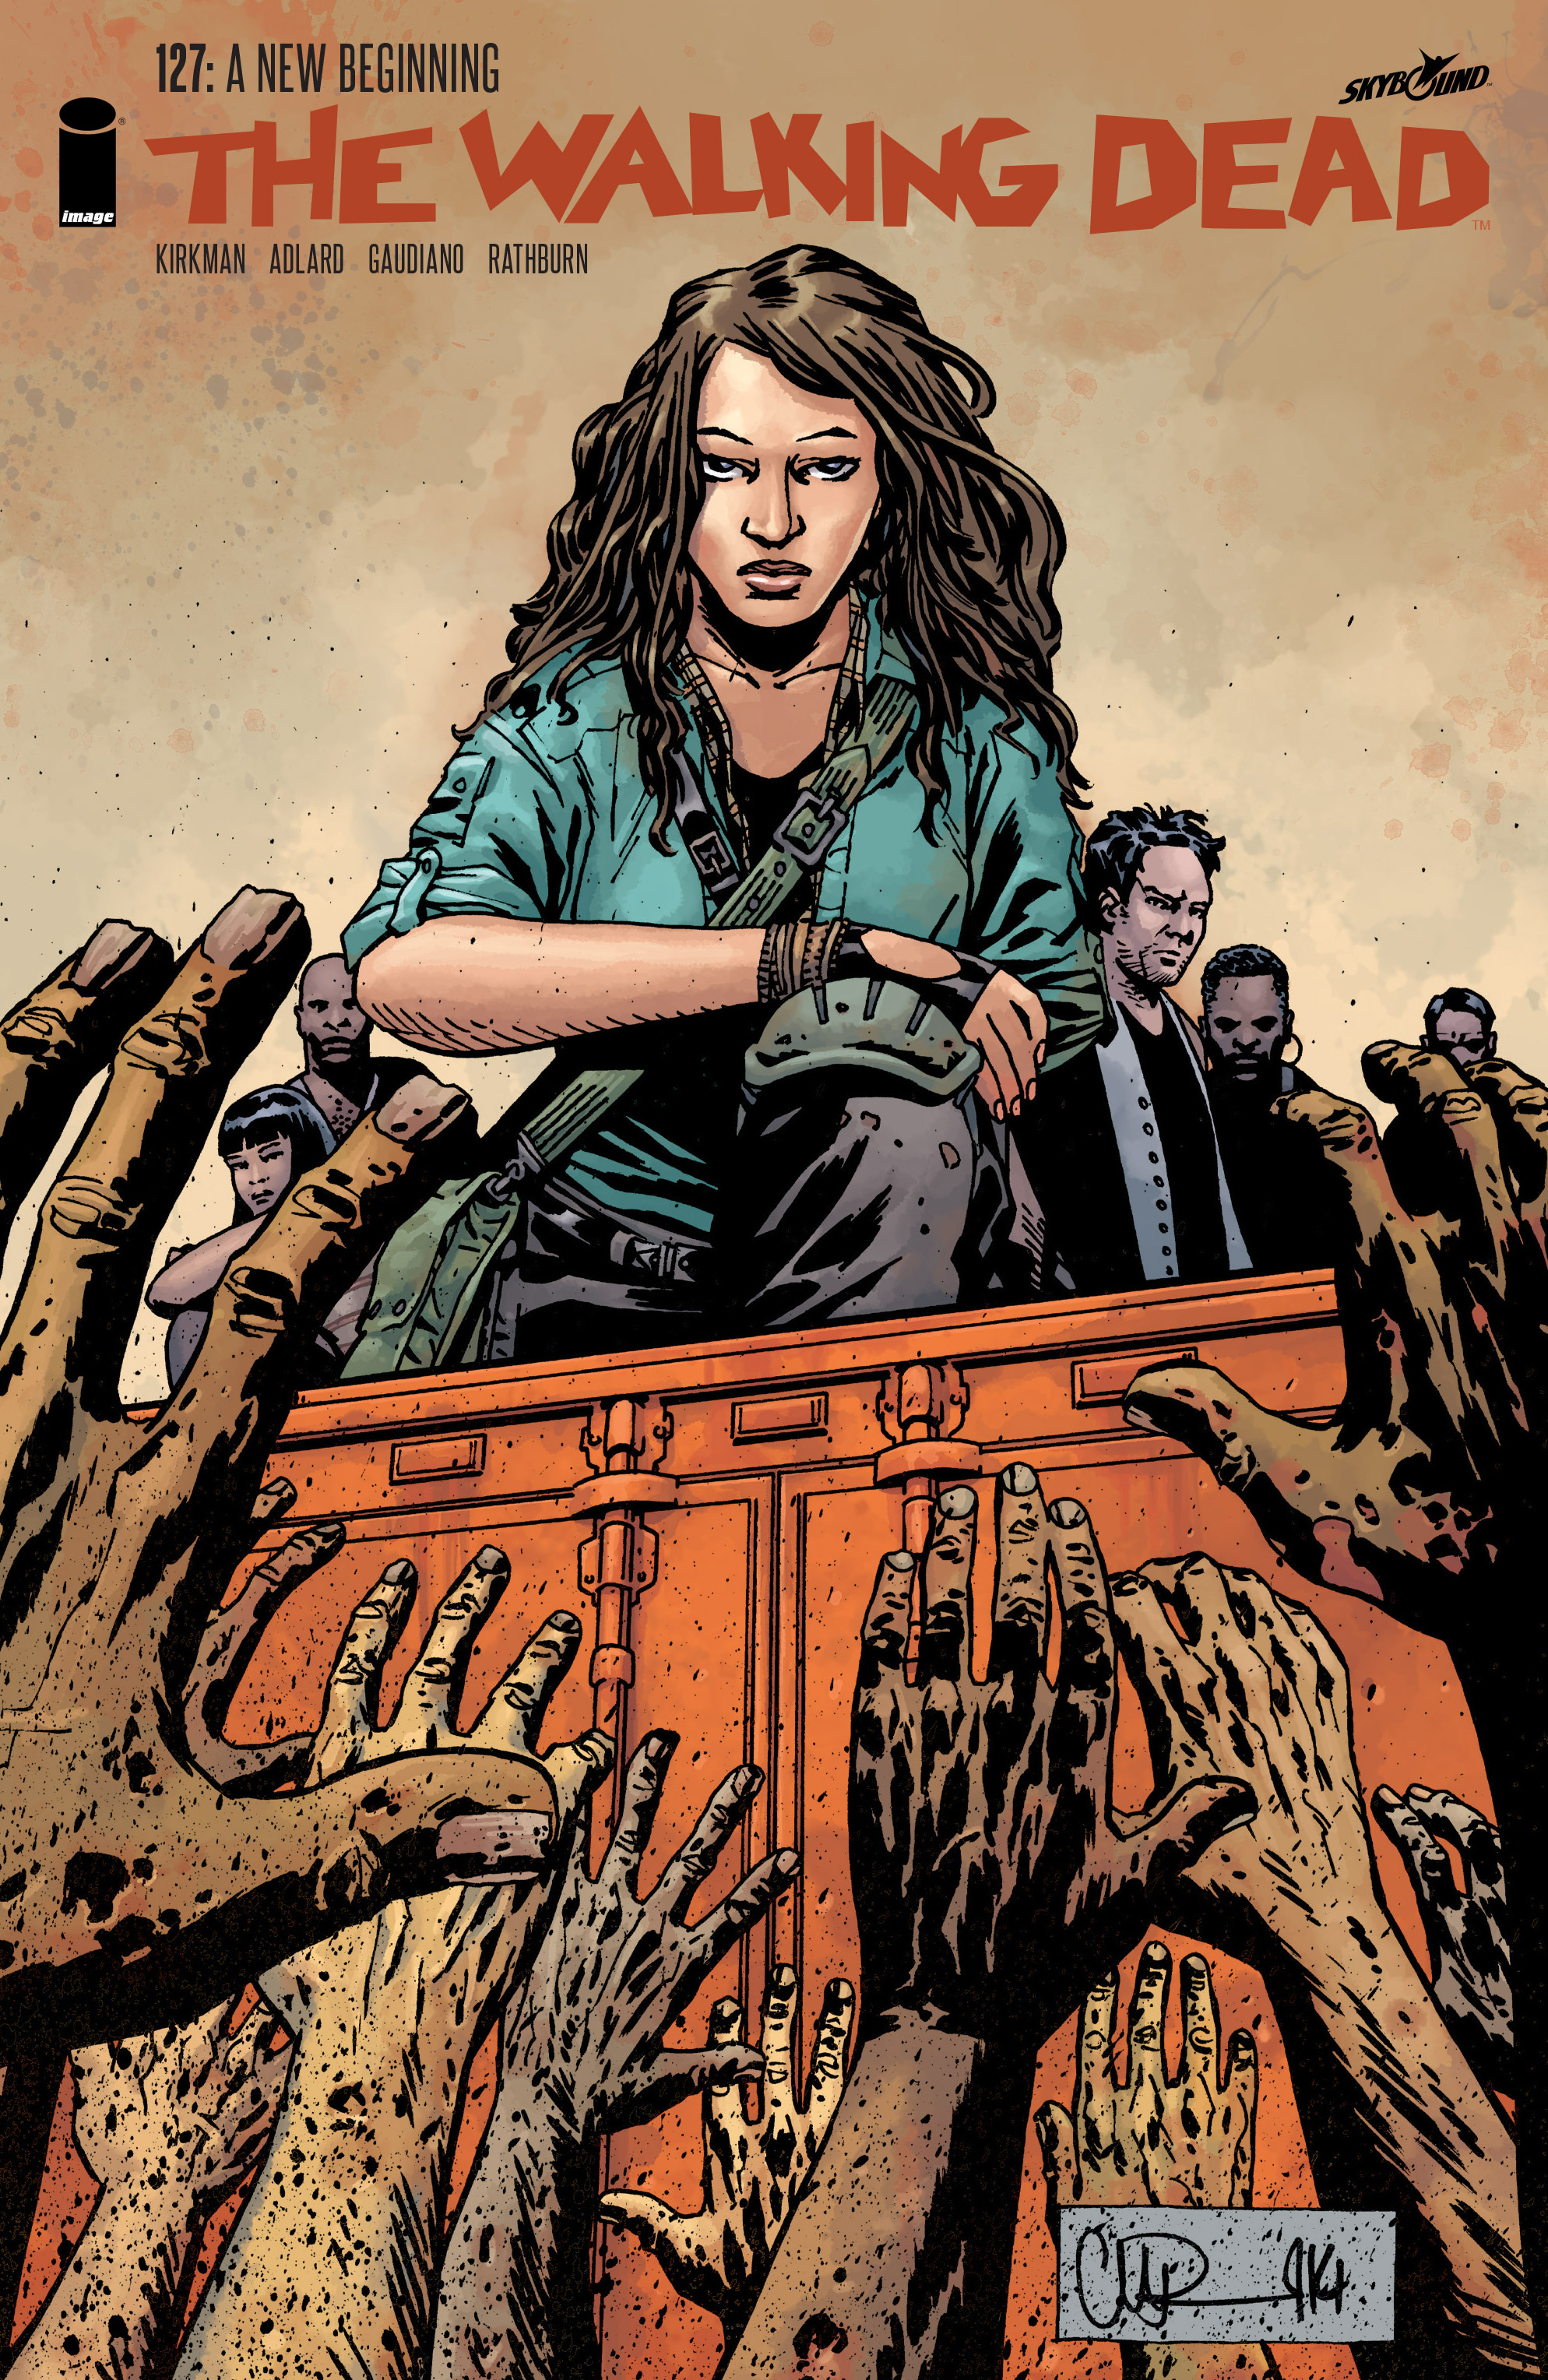 The Walking Dead Issue #127 Page 1